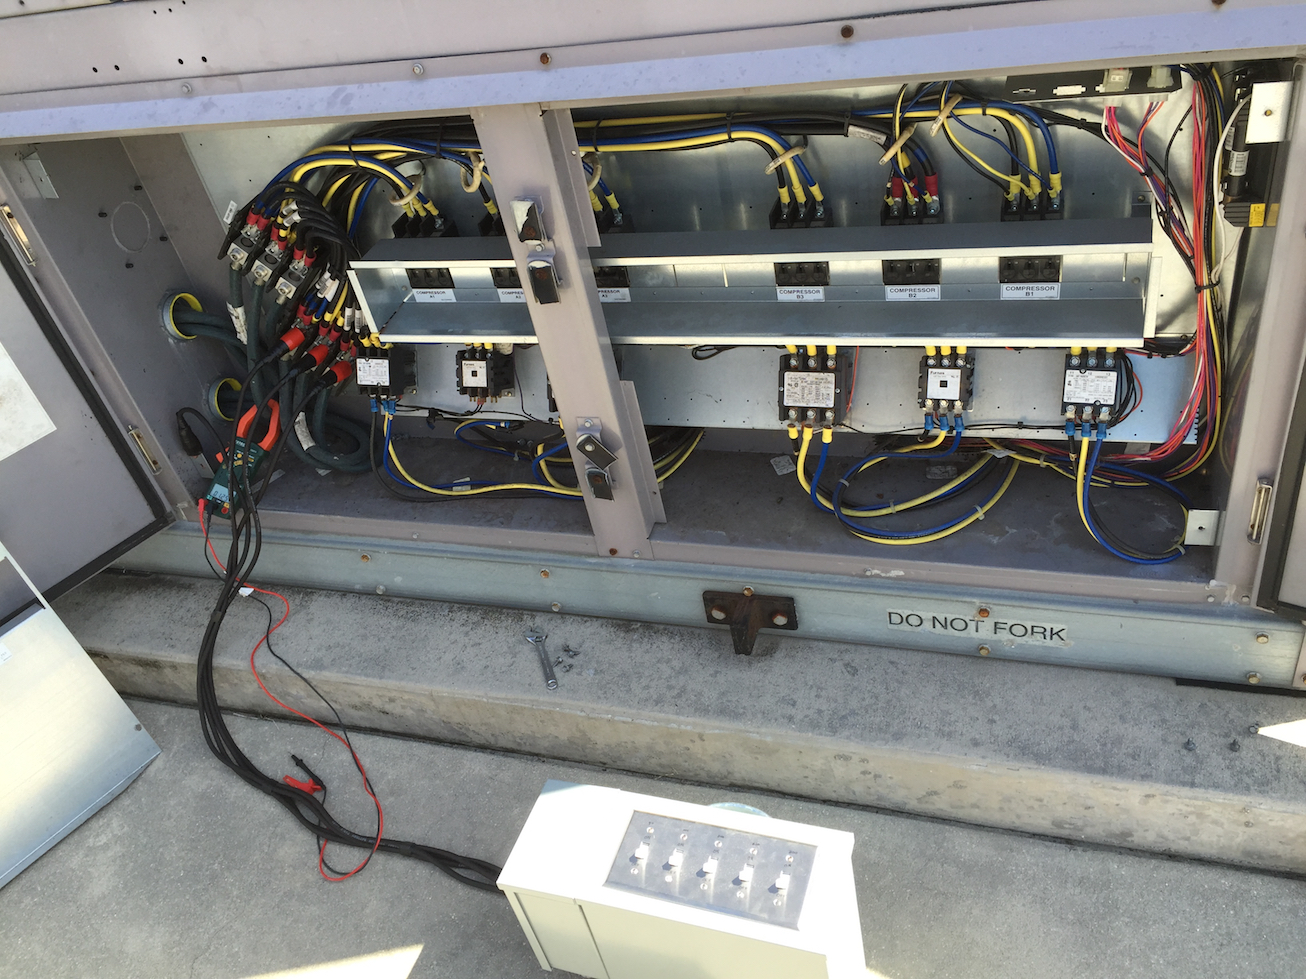 power factor correction equipment testing tool